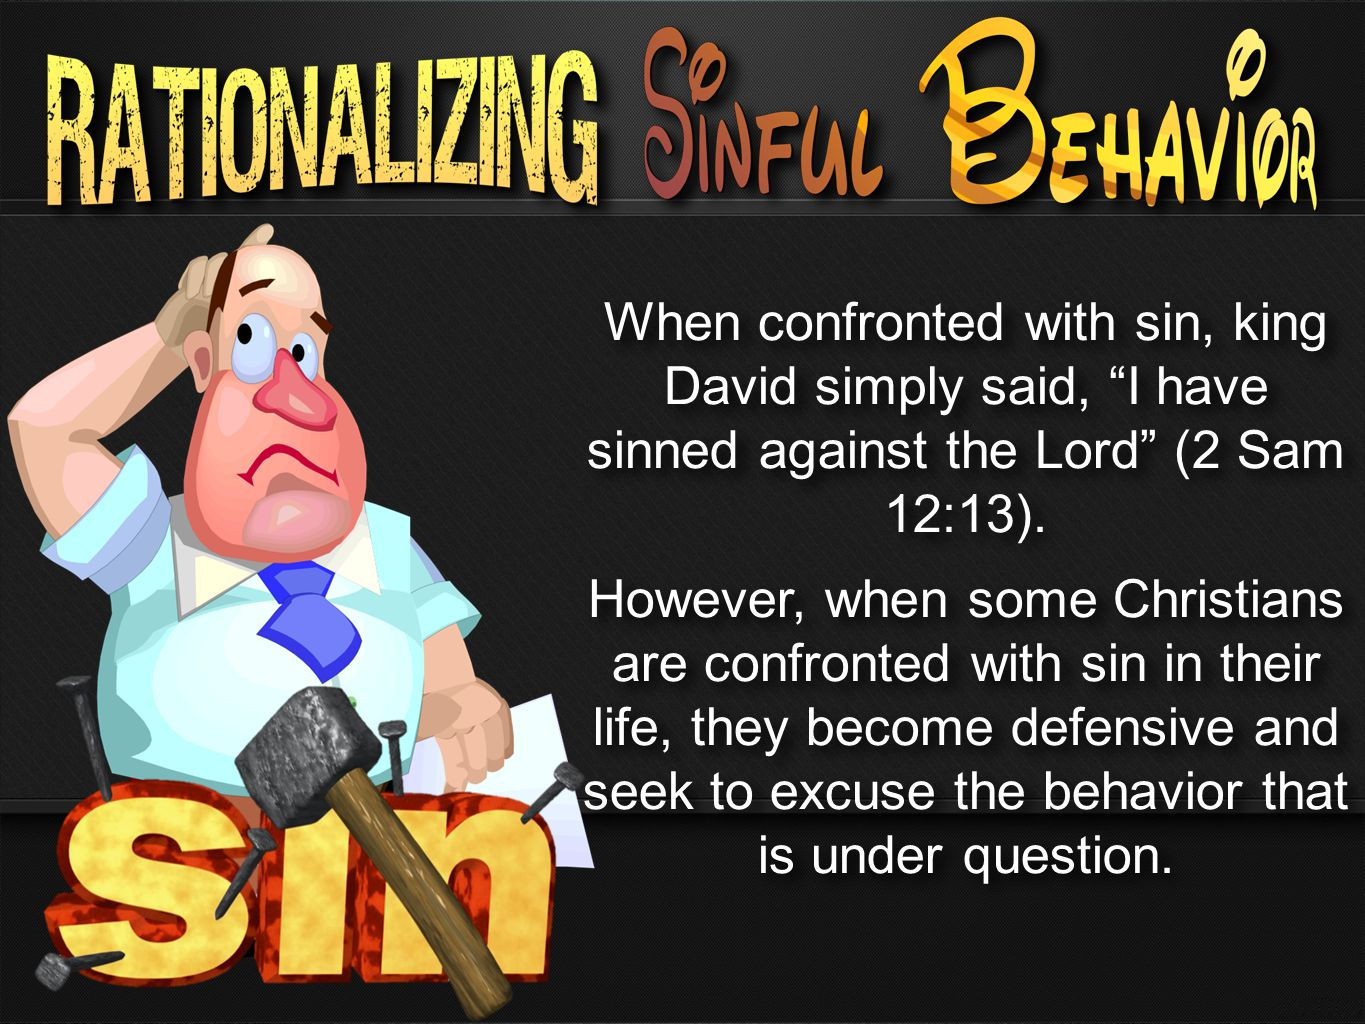 When confronted with sin, king David simply said, I have sinned against the Lord (2 Sam 12:13).